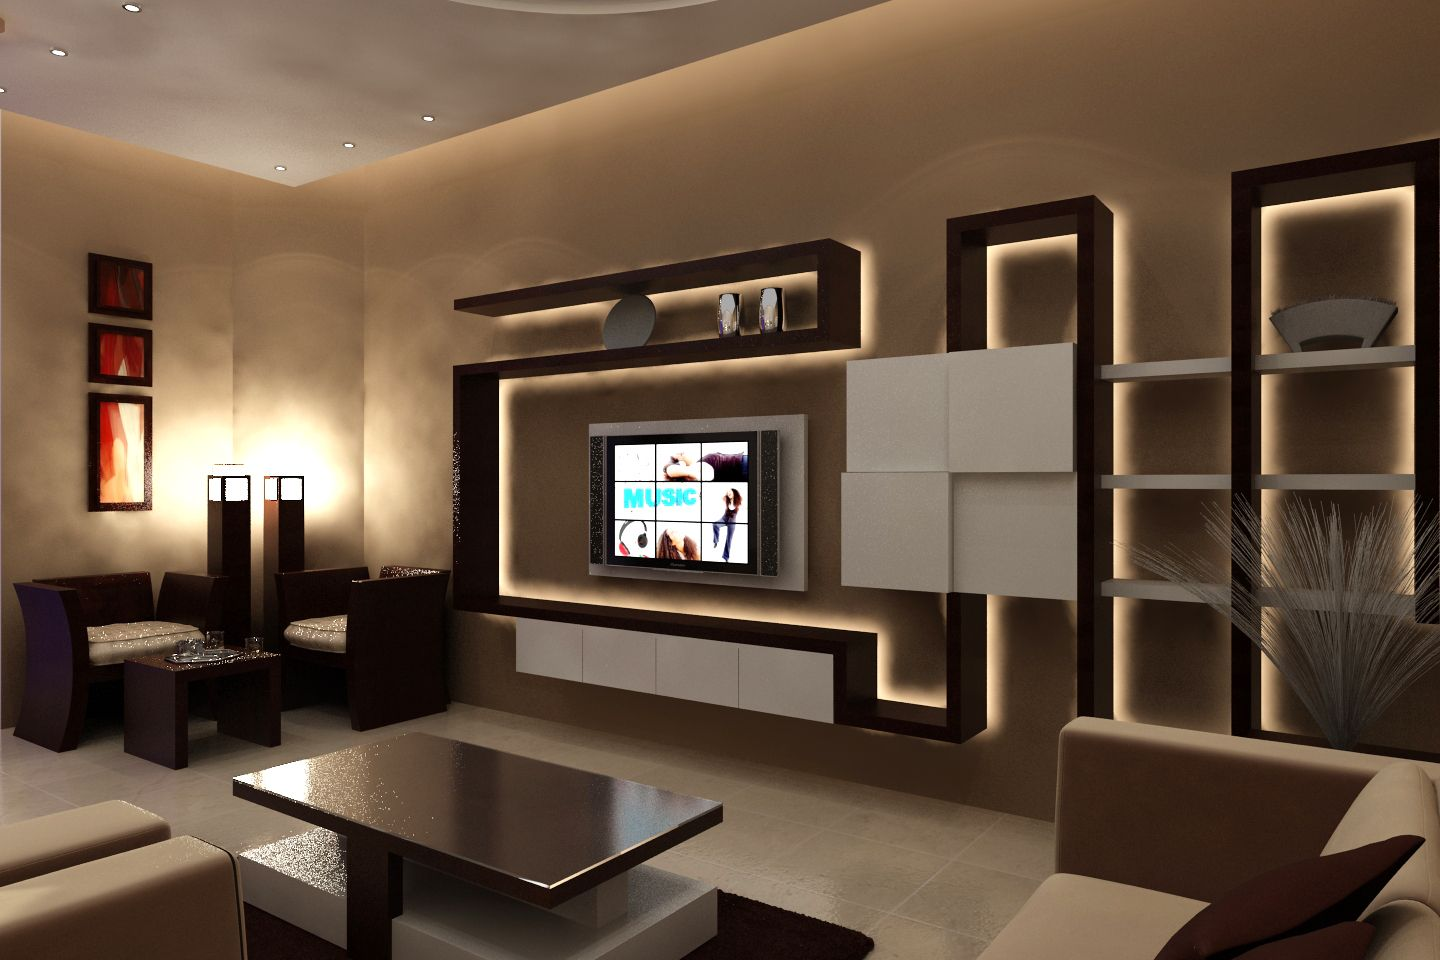 Modern Living Room Themes With Floating Tv Wall Shelf And Stylish Coffee Table On Dark Rug Living Room Themes Cozy Living Rooms Room Design